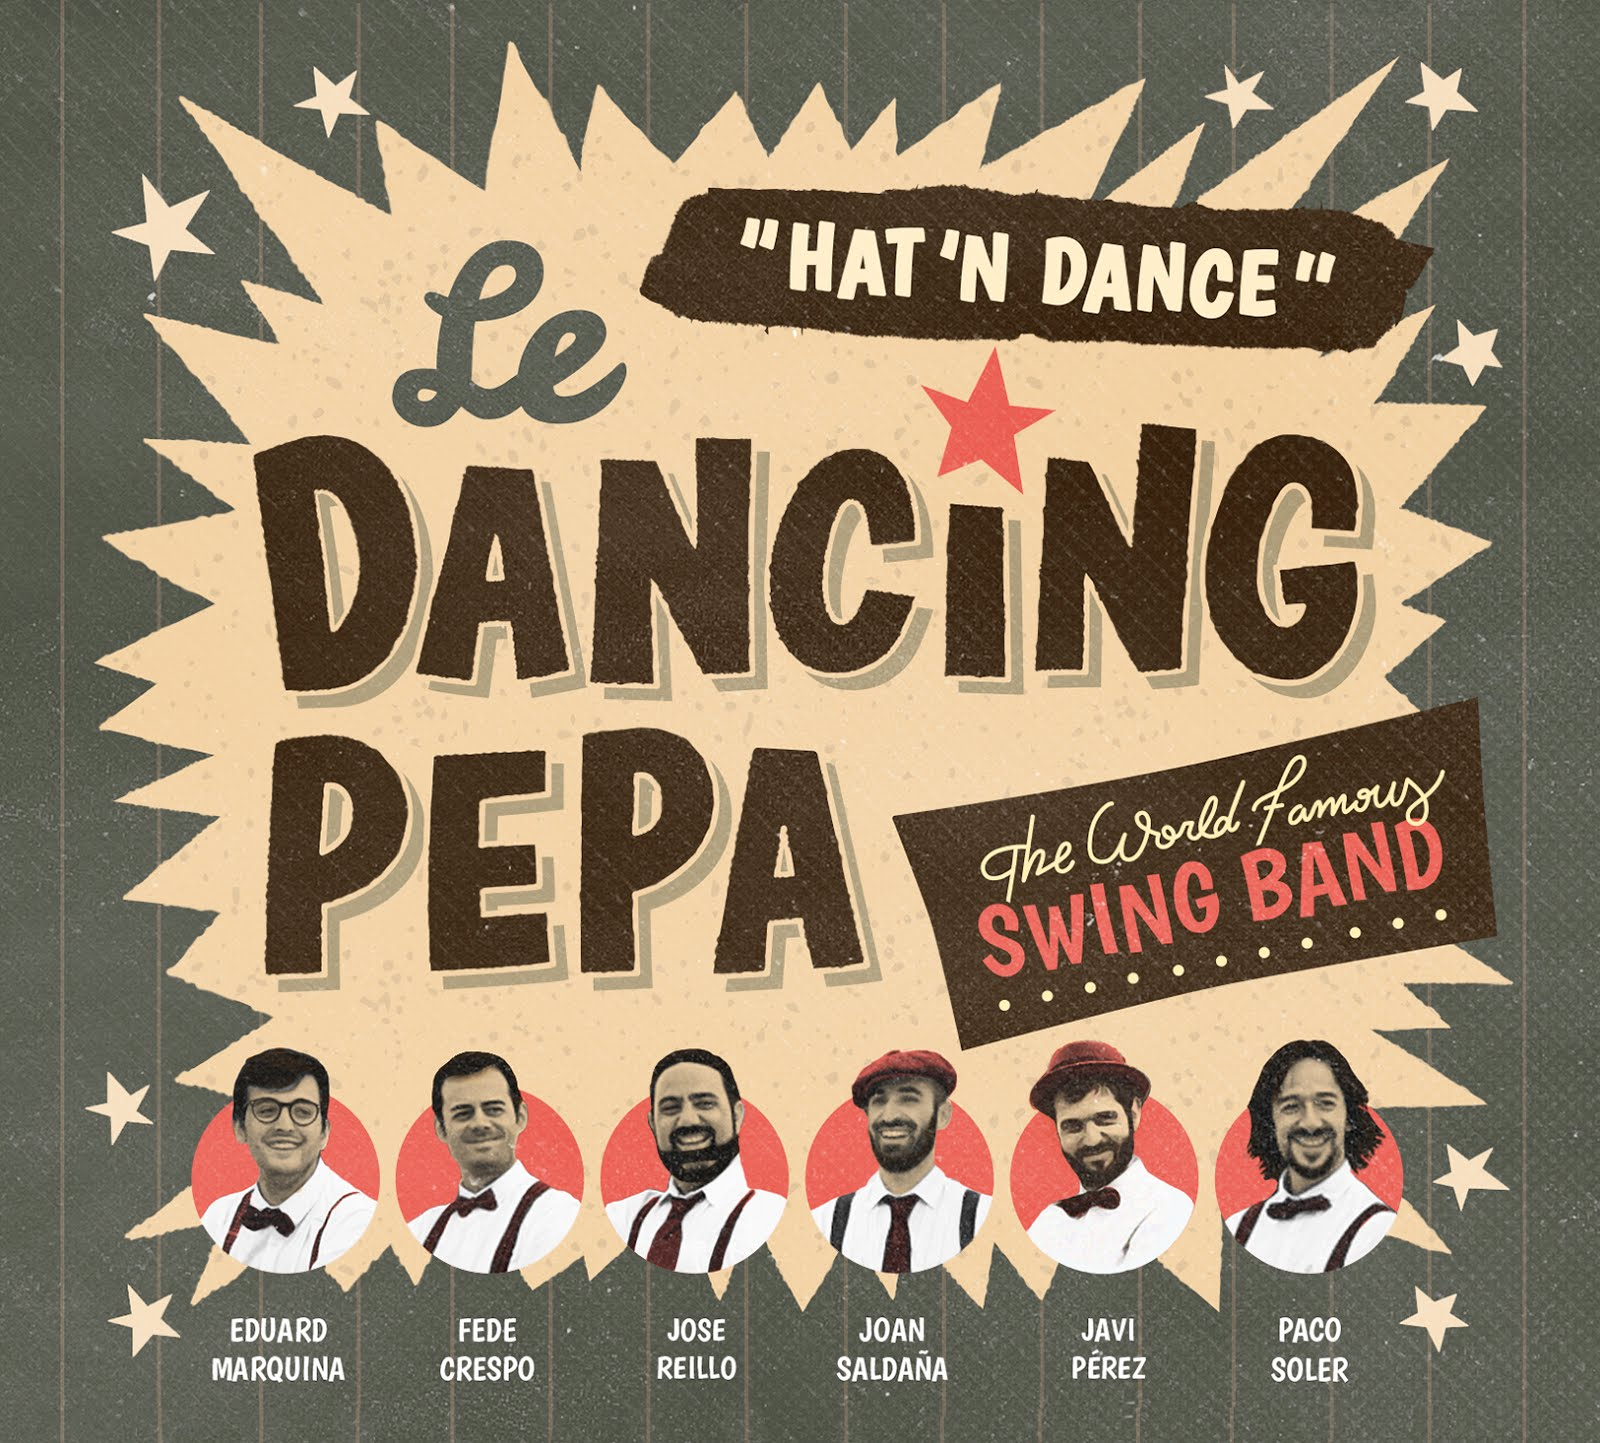 Le Dancing Pepa Swing Band - Festival IX Spring Jazz Meeting